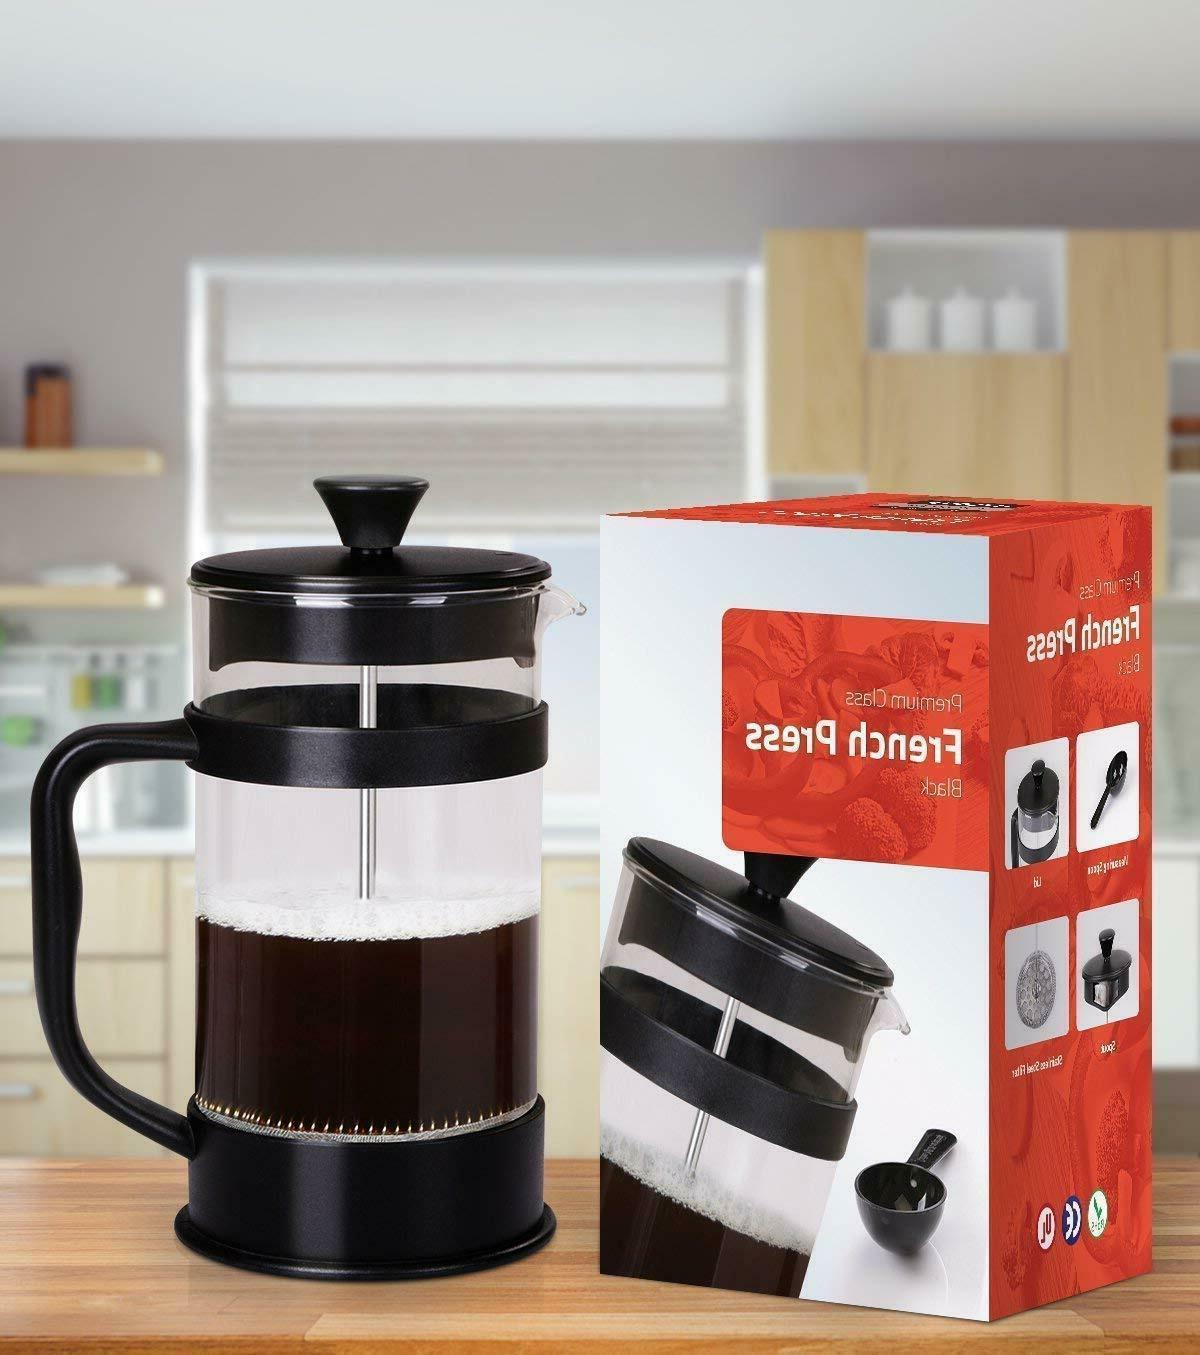 French Press Maker Stainless Steel Cup 34oz Tea 1 Filter